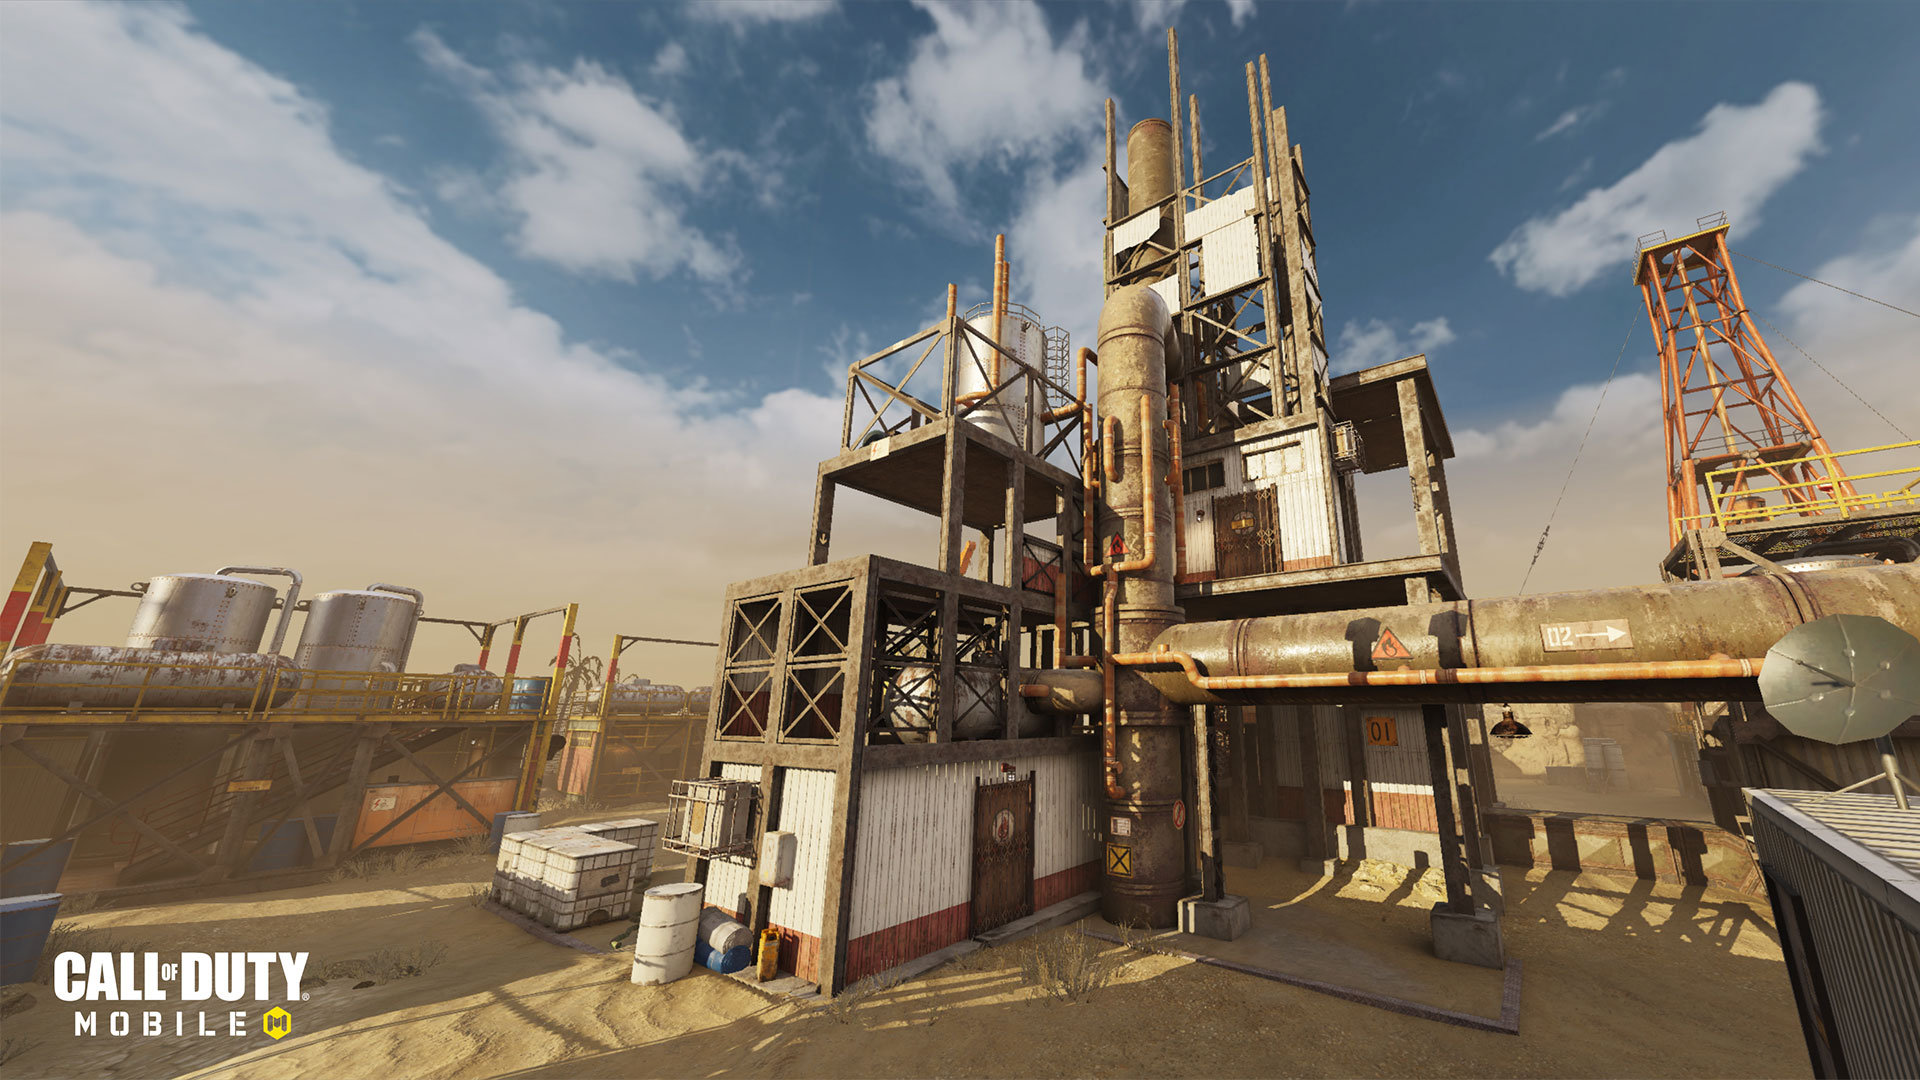 Call of Duty®: Mobile Map Snapshot: Rust - Image 7